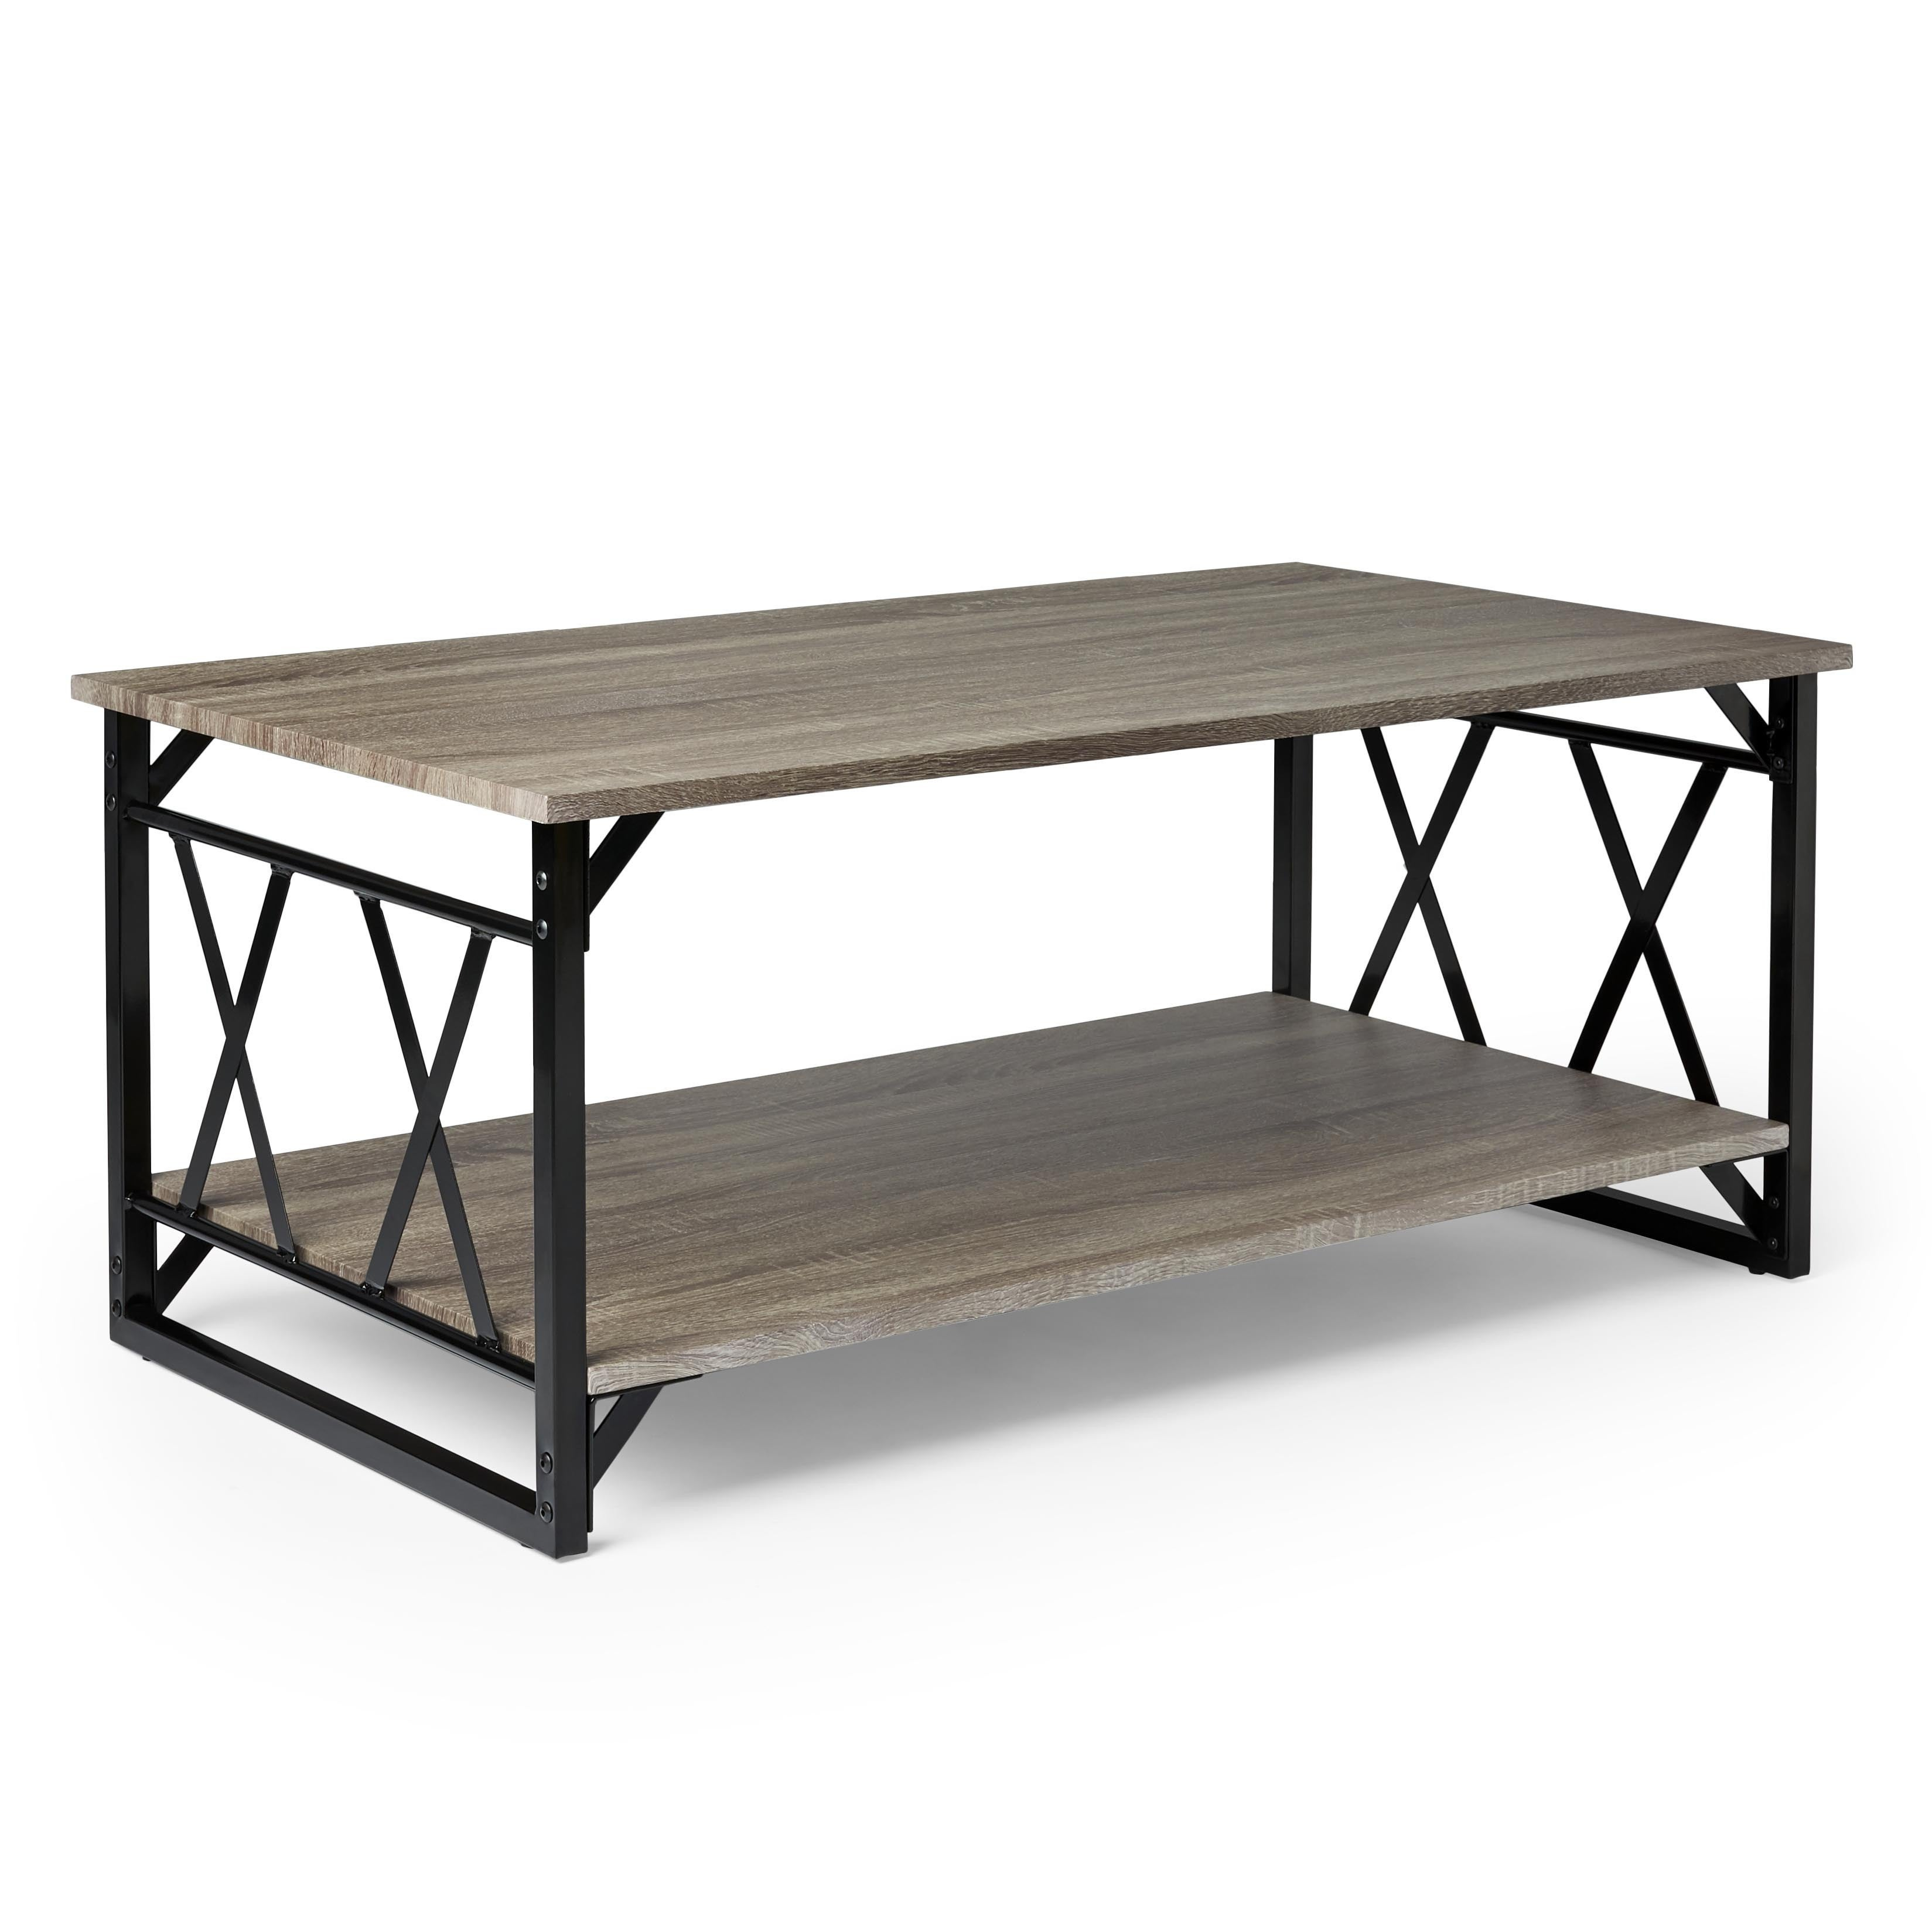 Shop Reclaimed Style Grey Coffee Table with Double \'X\' Frame - On ...